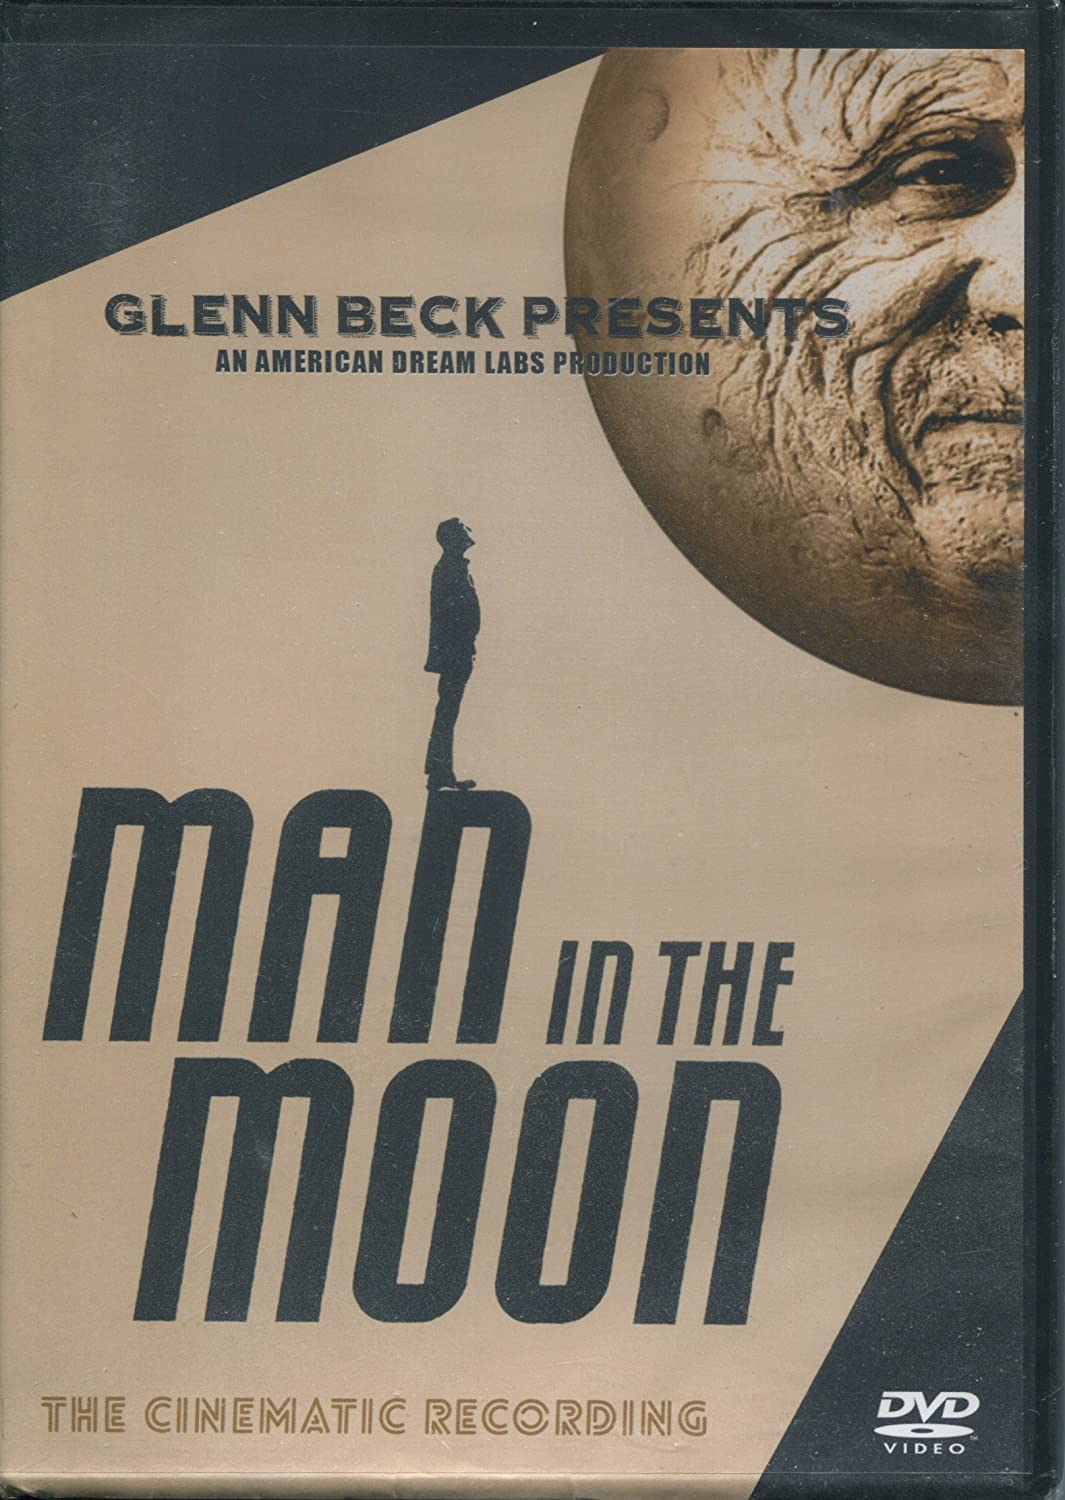 & Amazon.com: Glenn Beck Presents: Man in the Moon: Movies u0026 TV